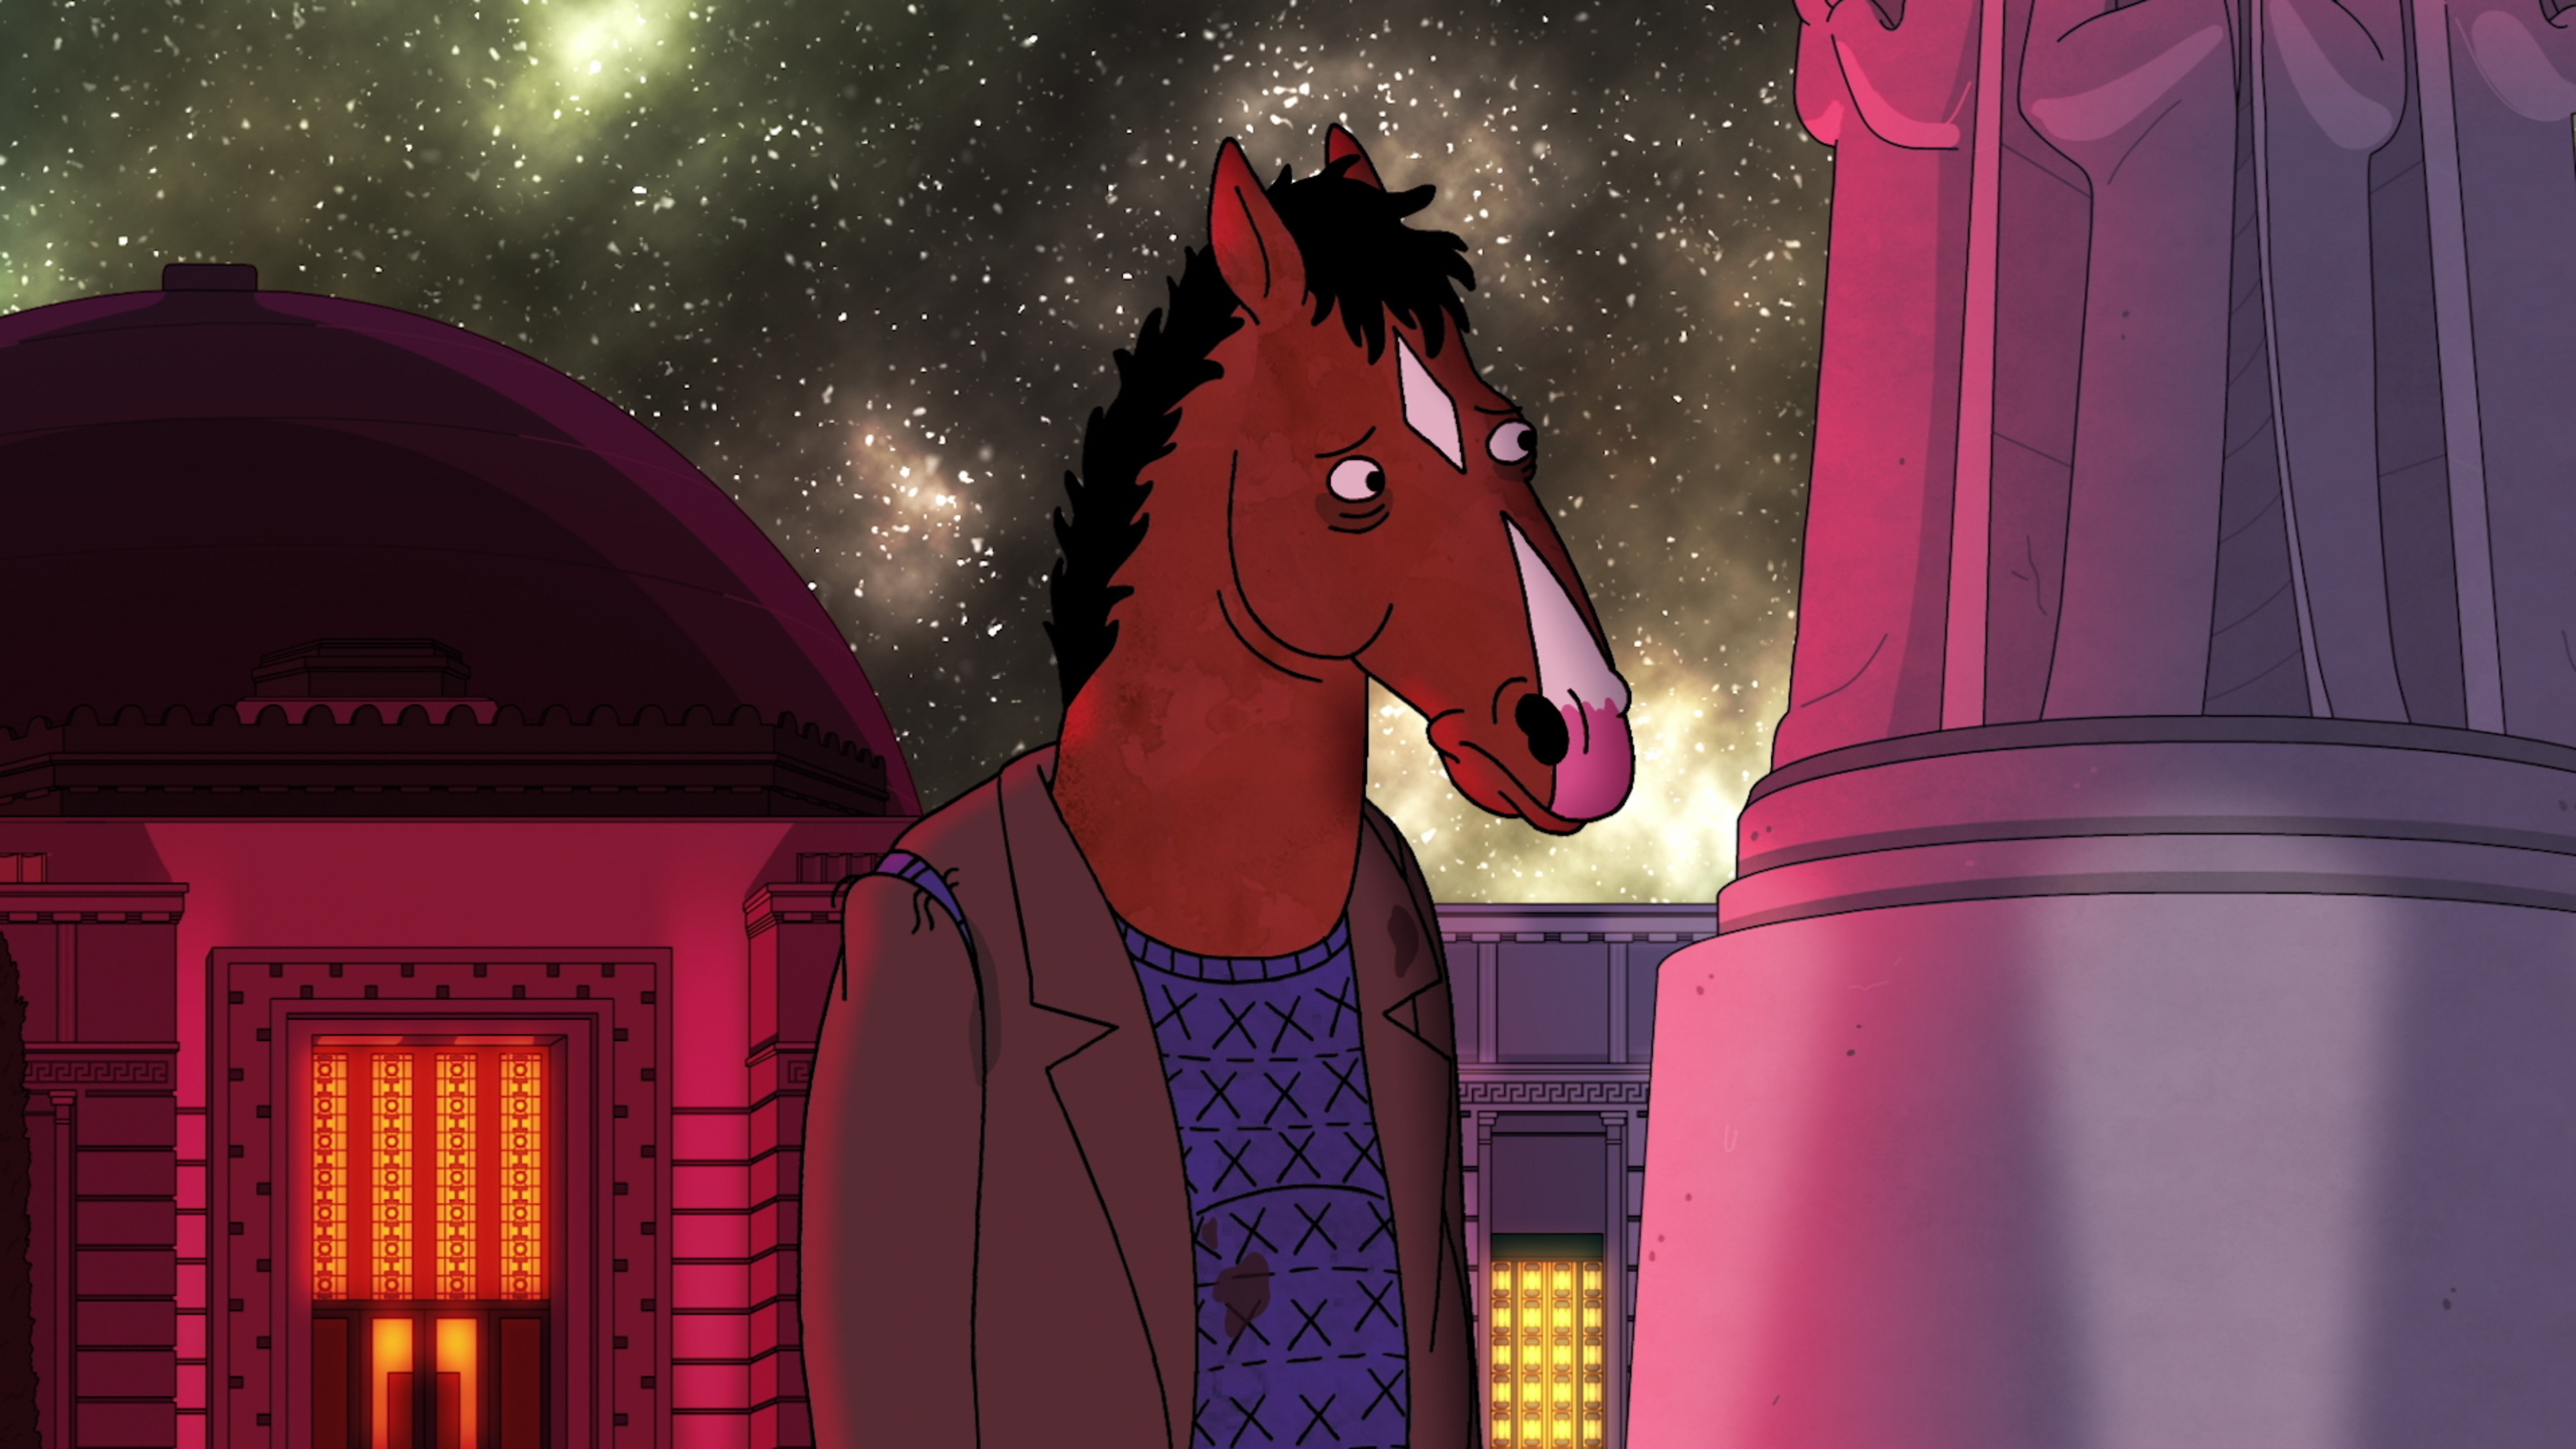 BoJack Horseman Season 6 Review: Netflix Hit Finishes Strong | Time